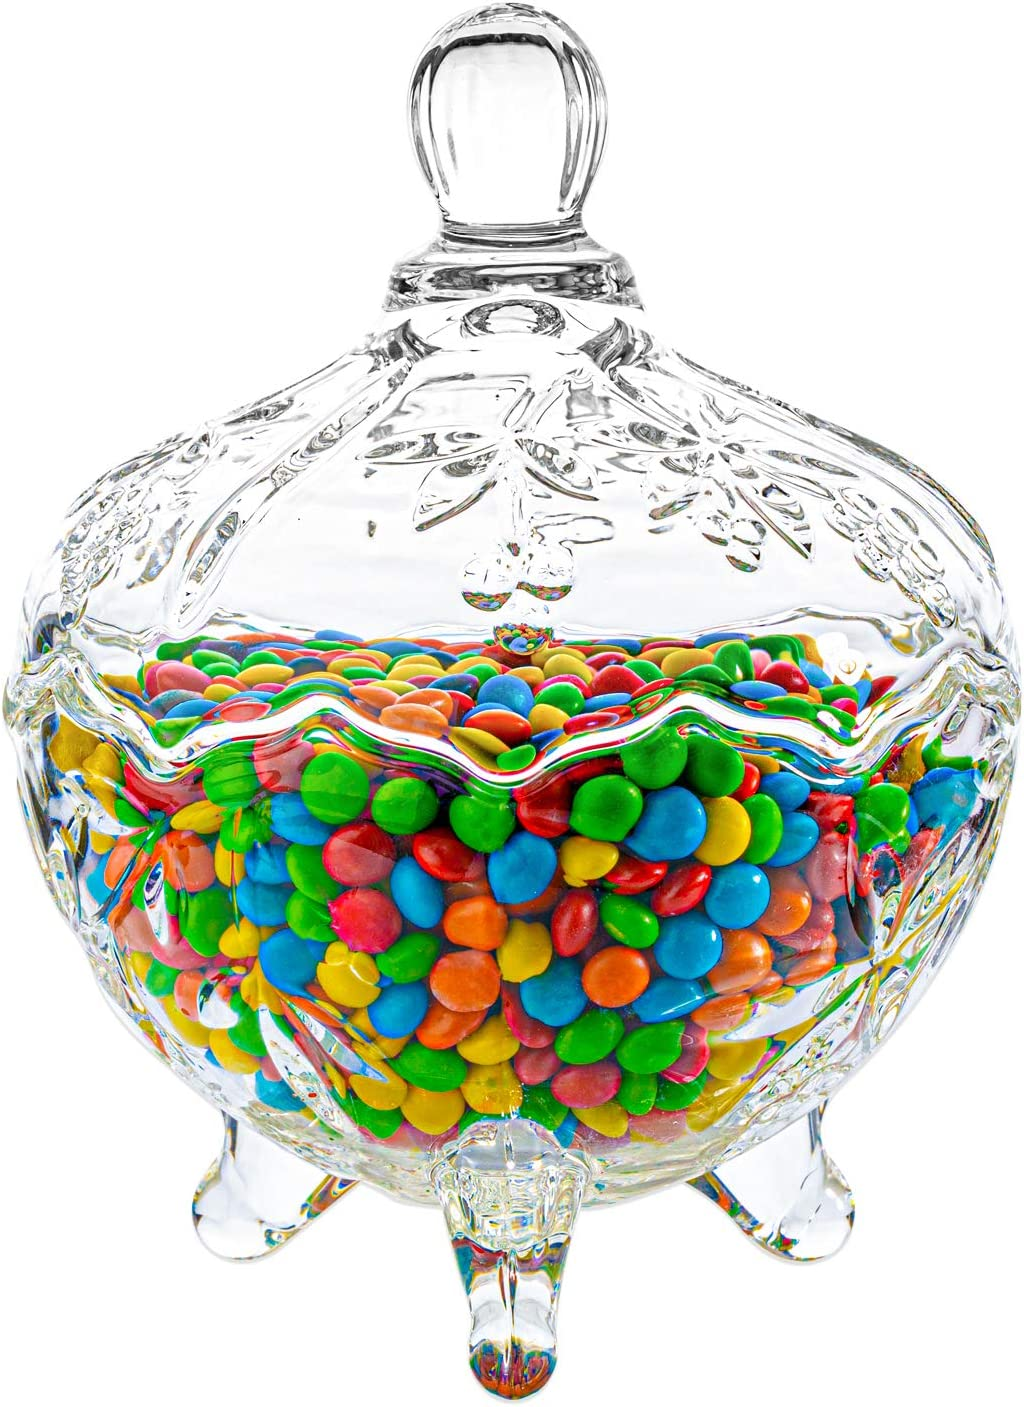 ComSaf Glass Footed Candy Dish with Lid, Clear Covered Candy Bowl, Crystal Candy Jar with legs for Home Office Desk Christmas Gift, Set of 1